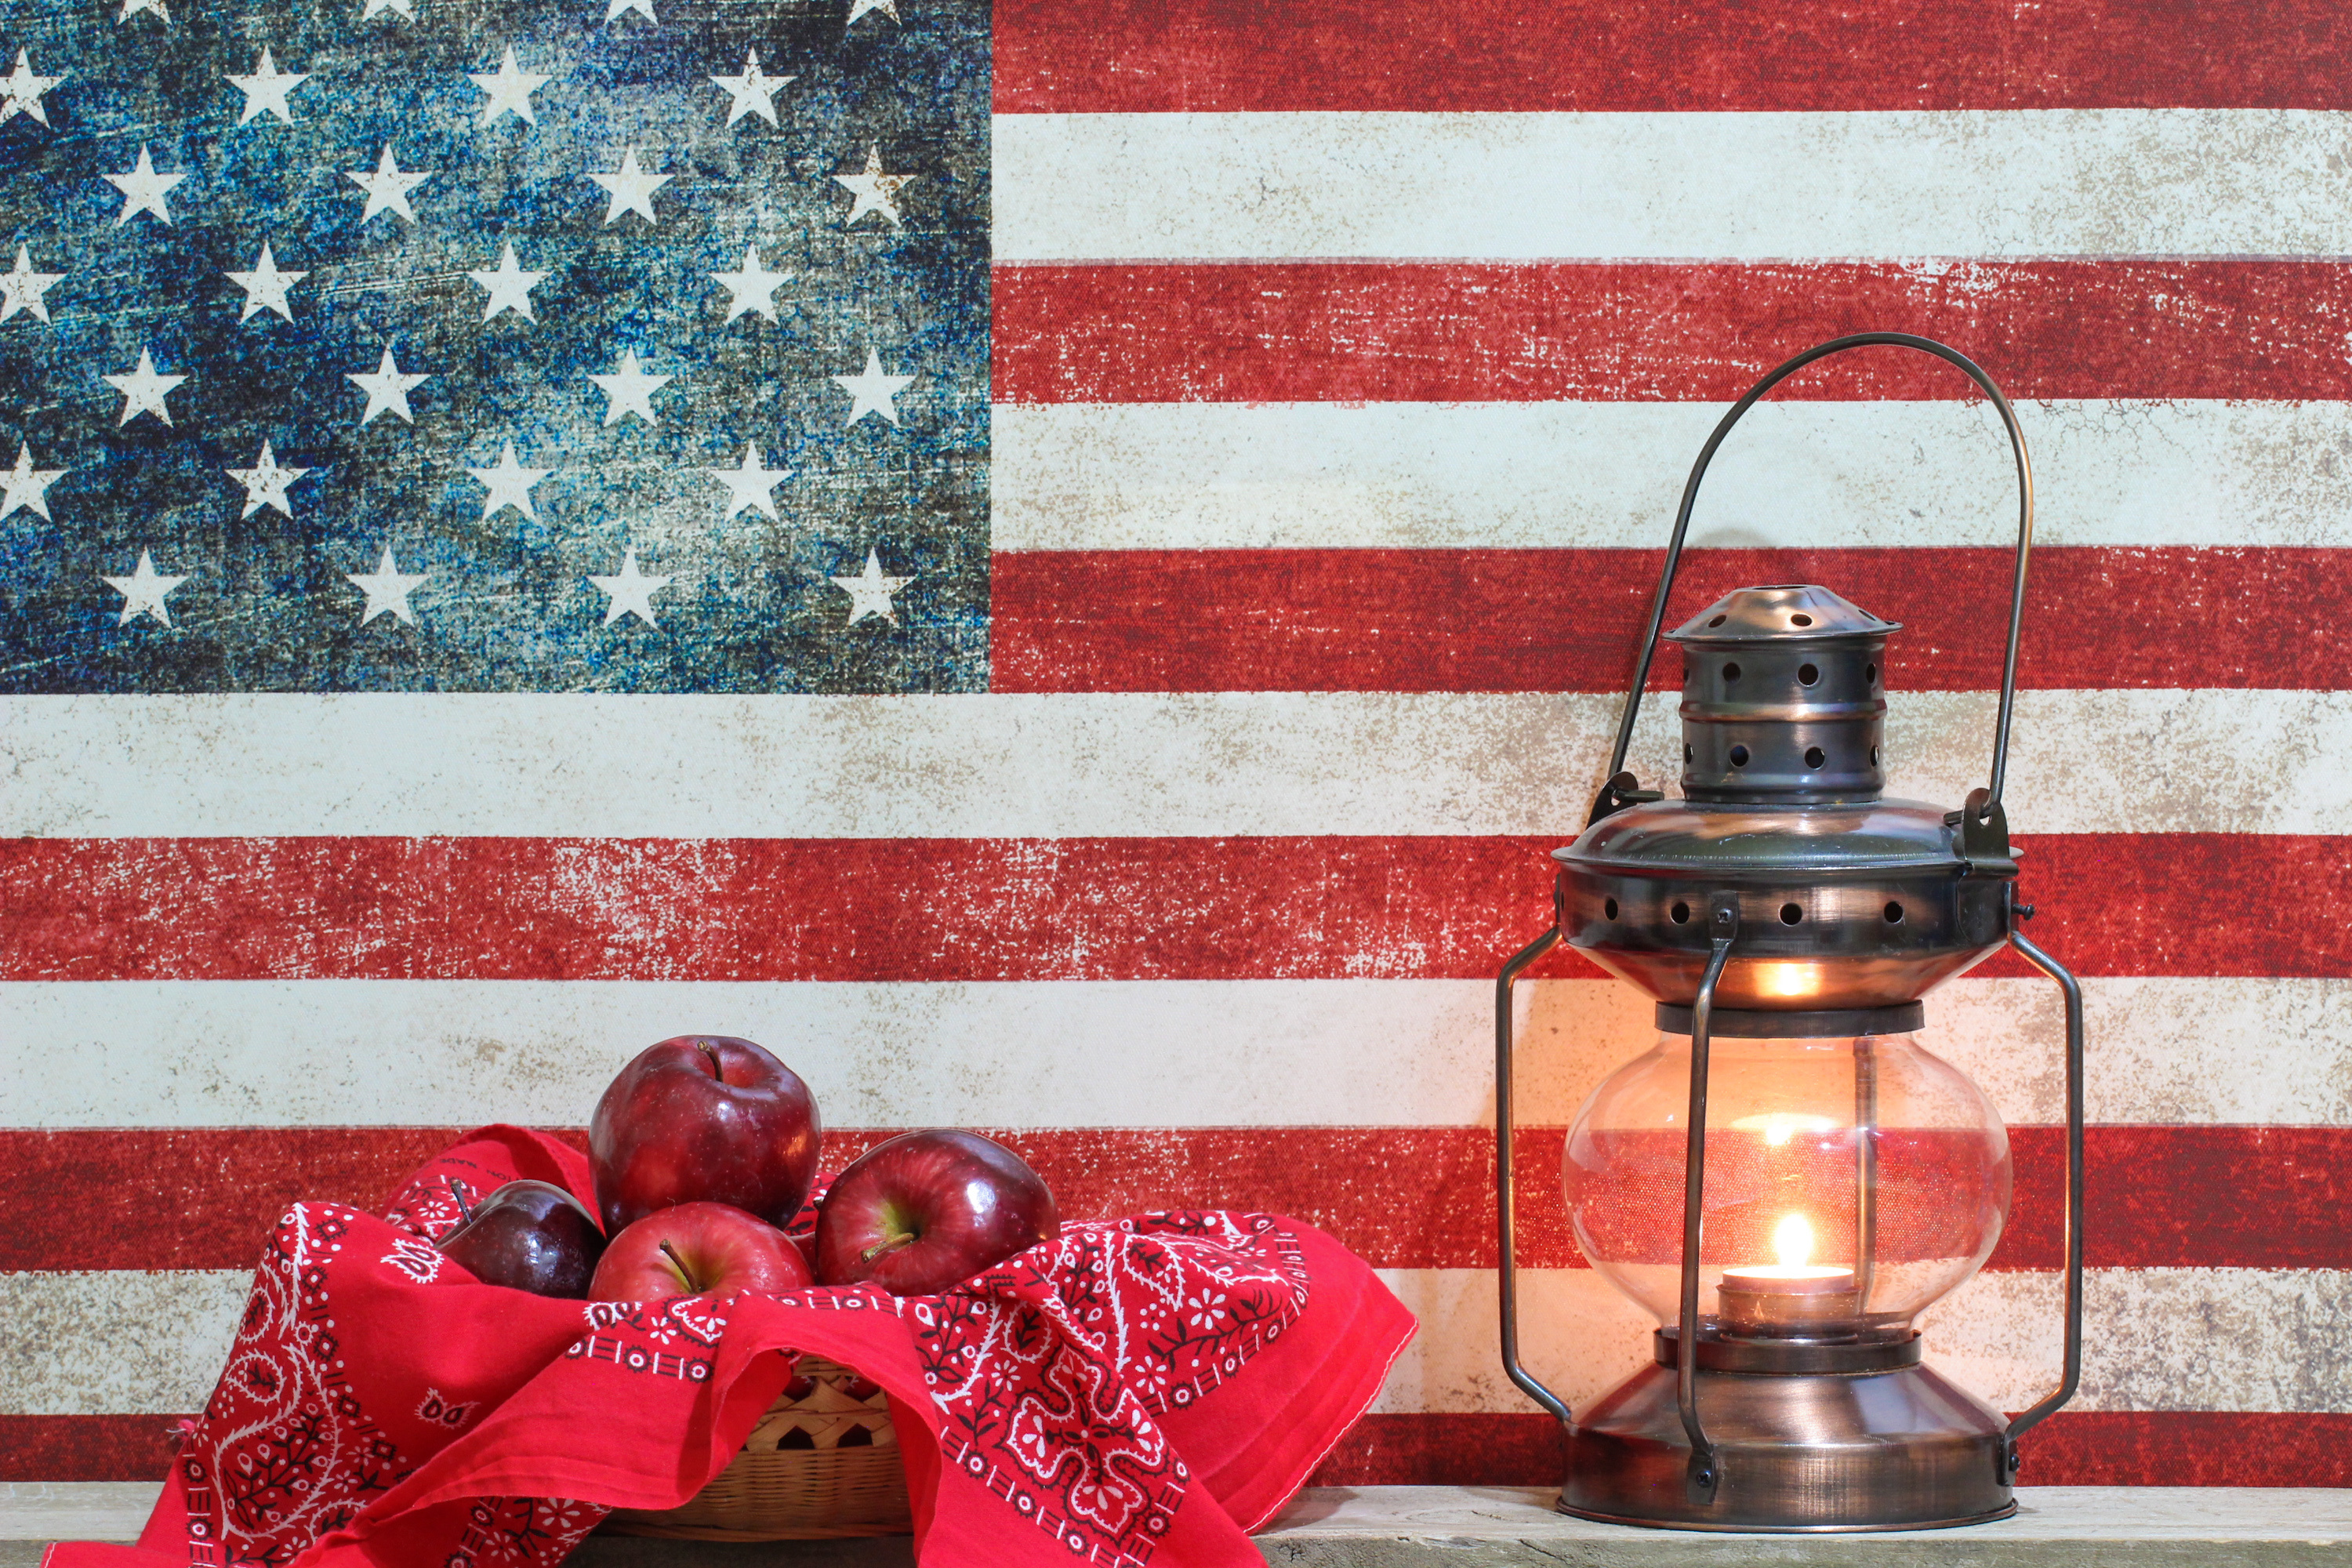 basket-of-apples-with-american-flag-background